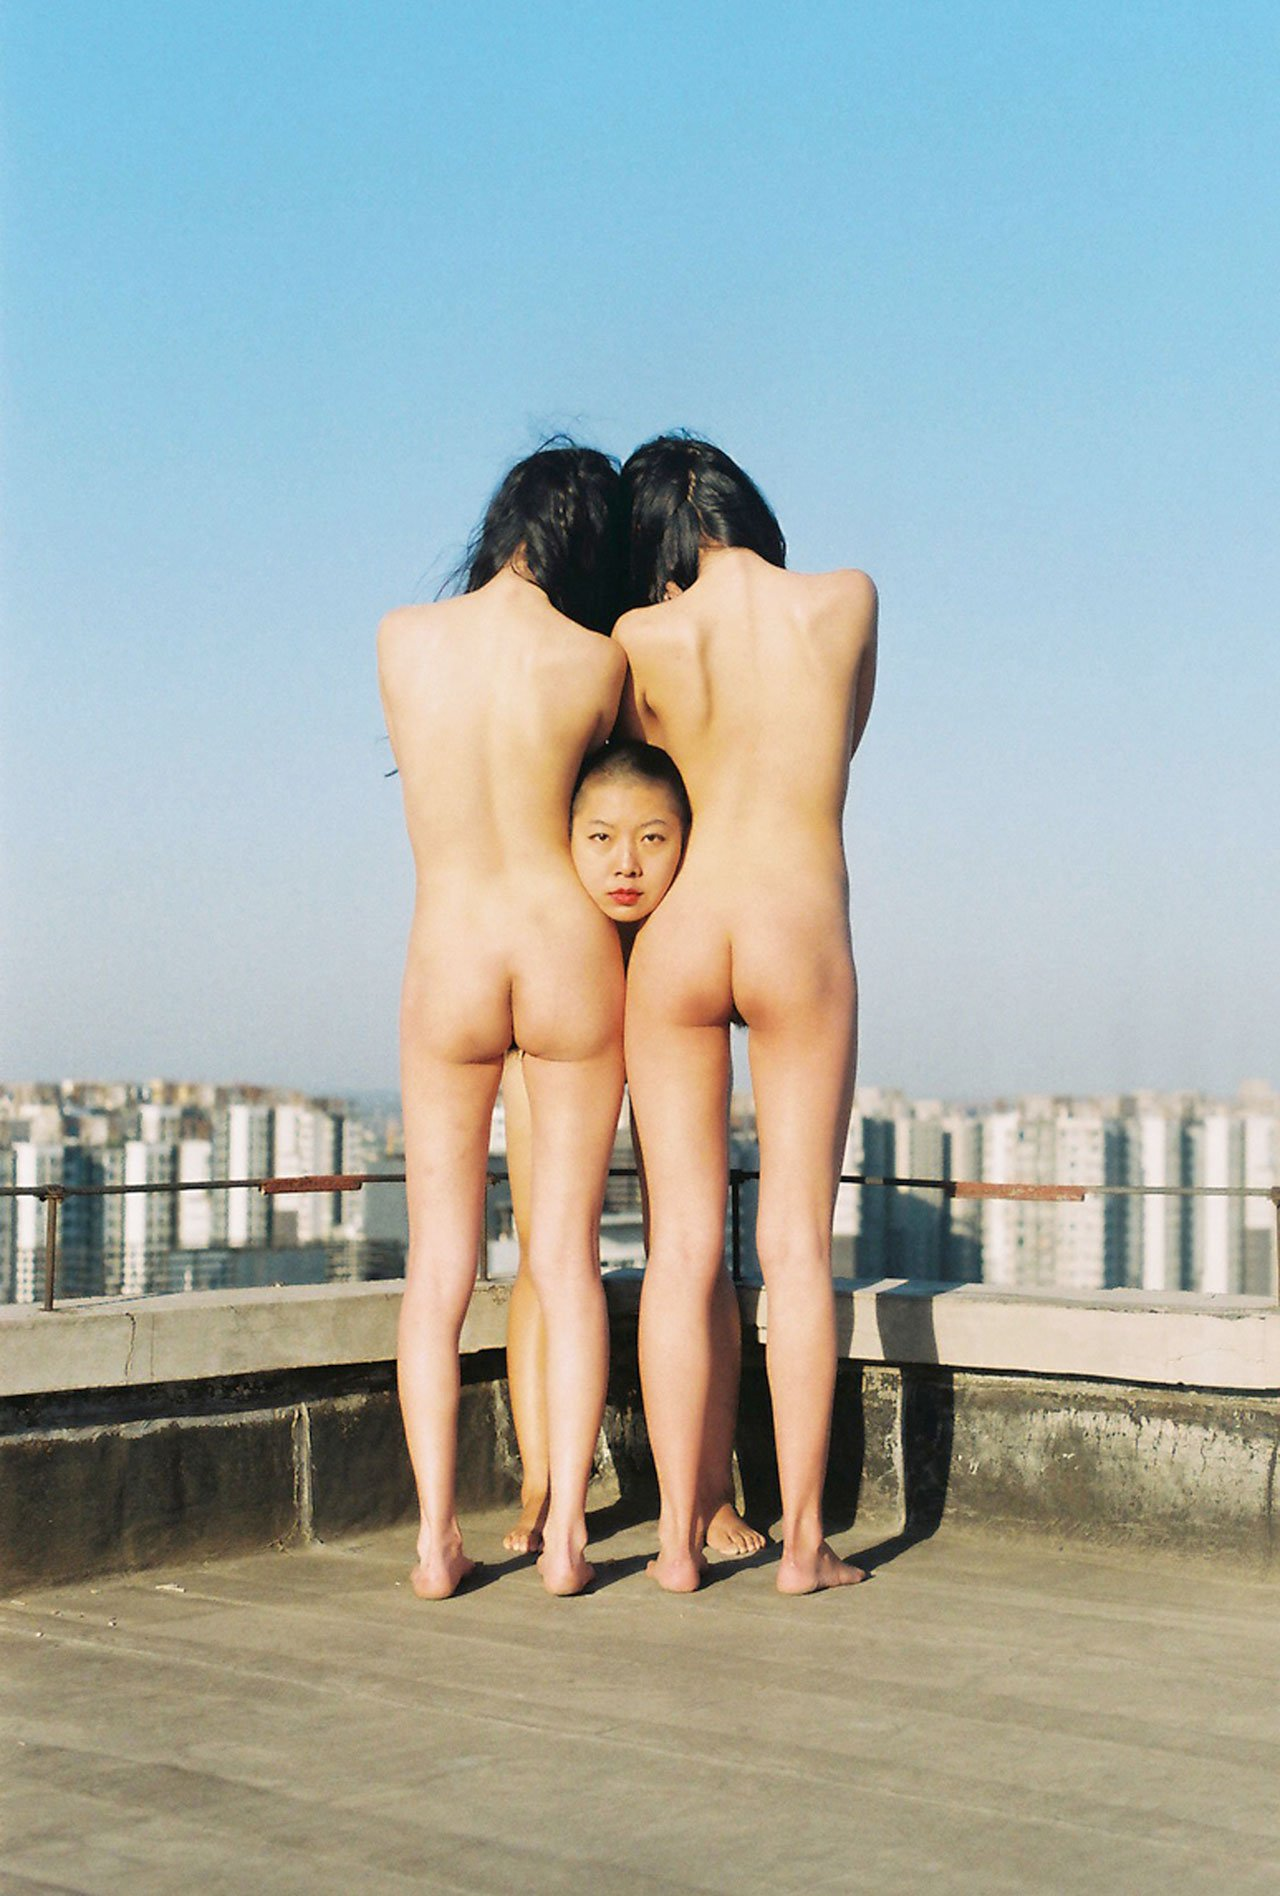 Ren Hang, Untitled, 2013 © Ren Hang.